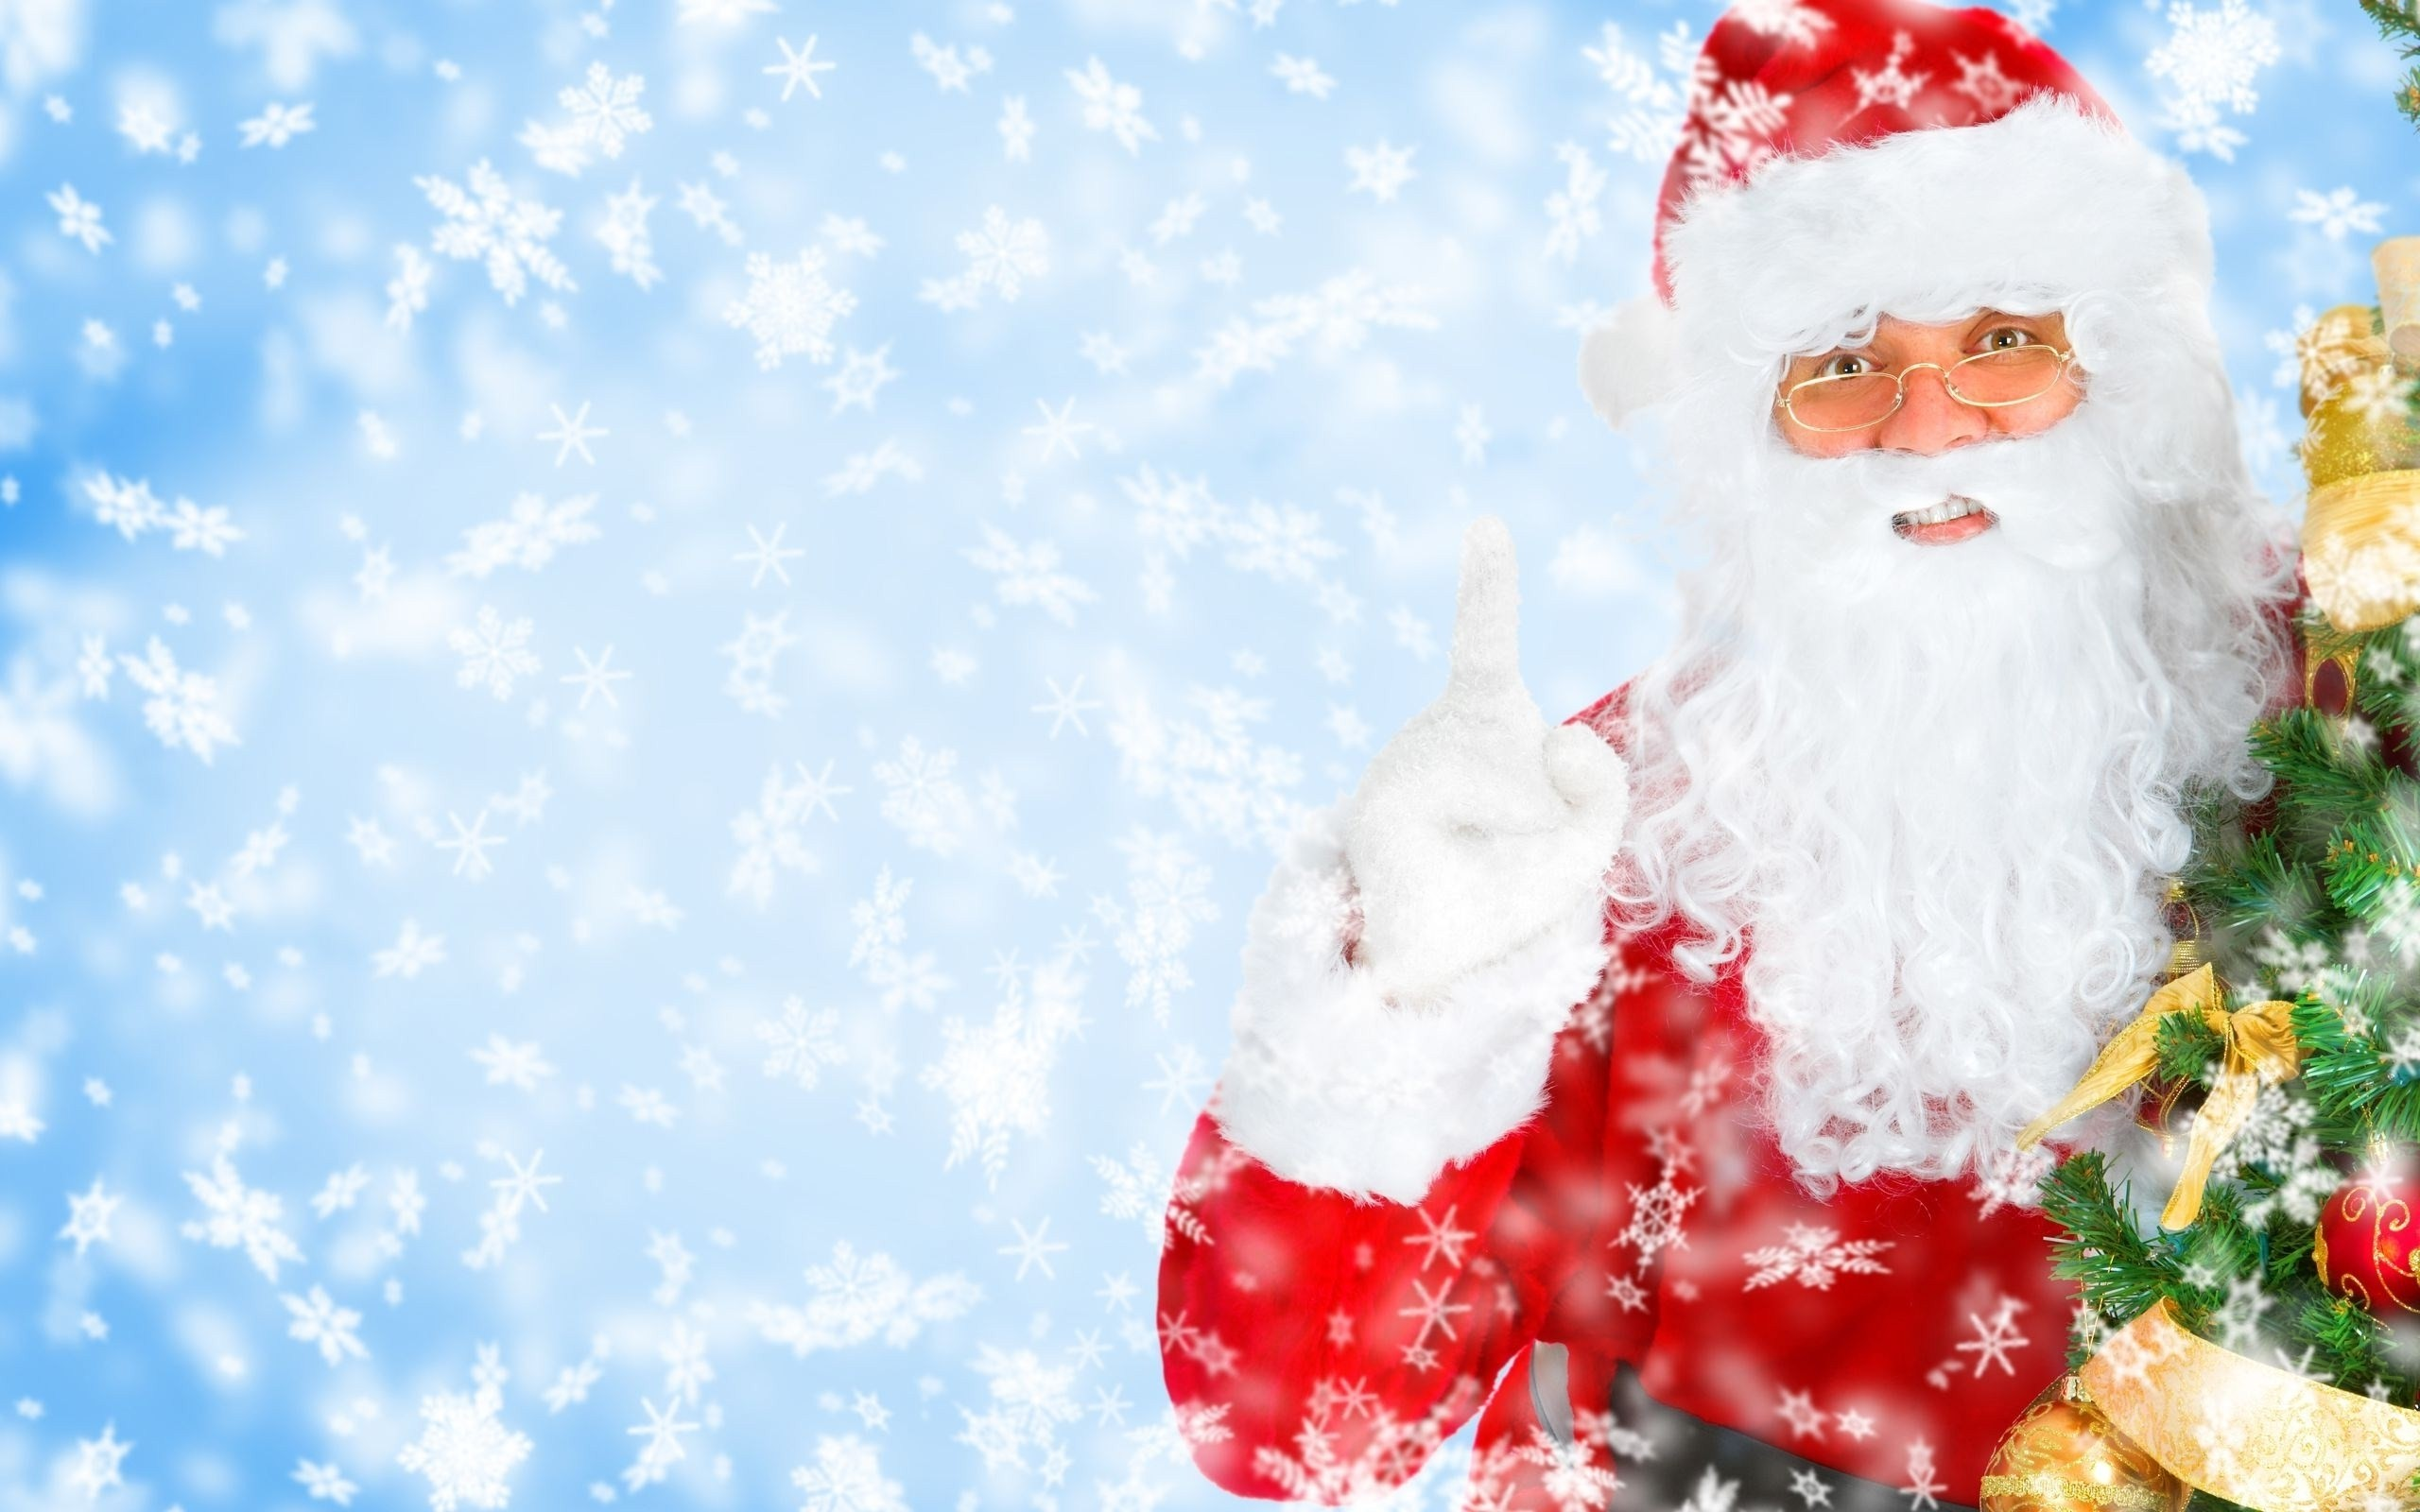 2560x1600 Christmas Santa Claus HD Images Christmas Santa Claus Photo